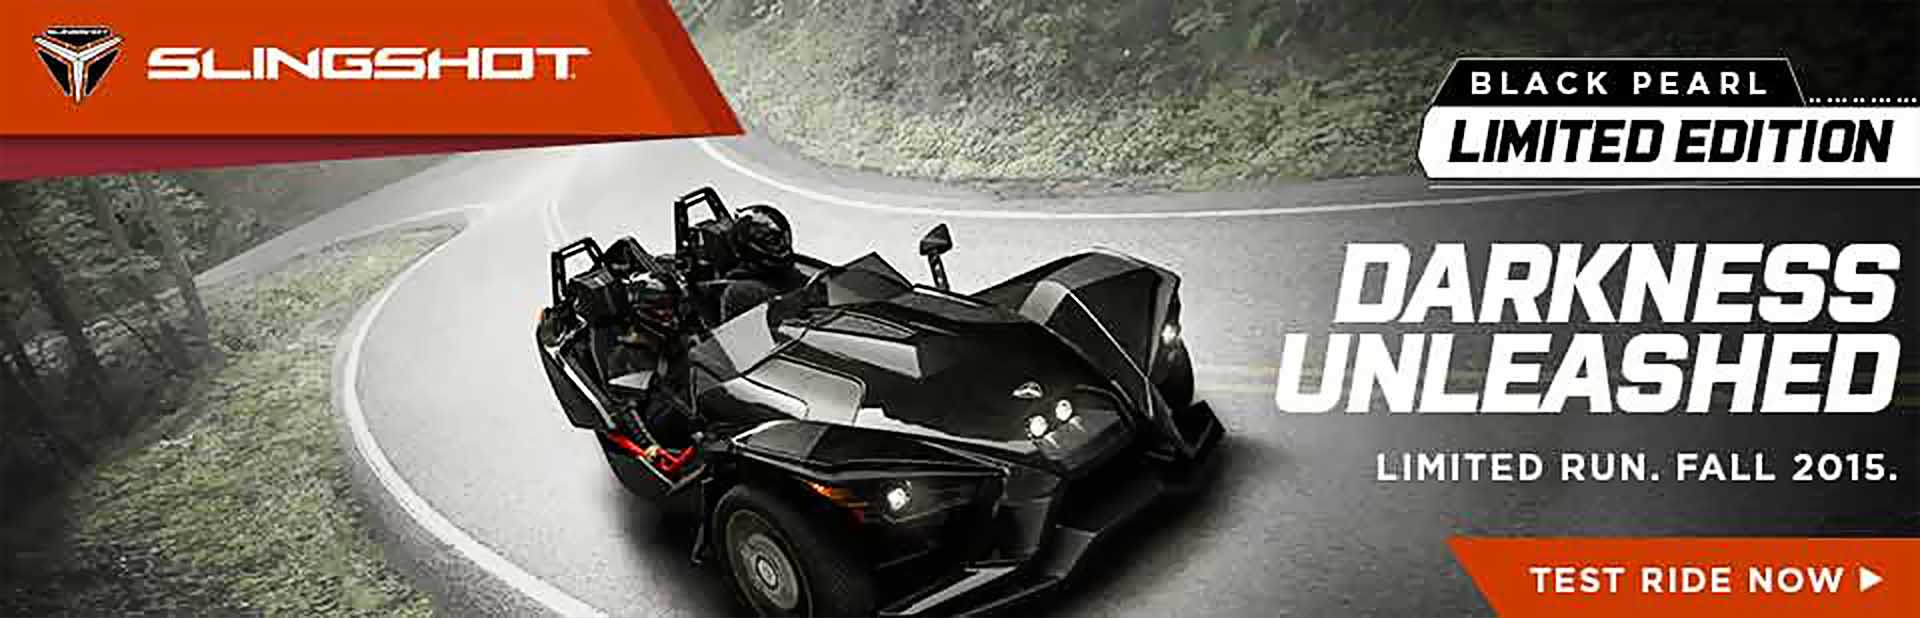 2016 Polaris Slingshot - Black Pearl Limited Edition